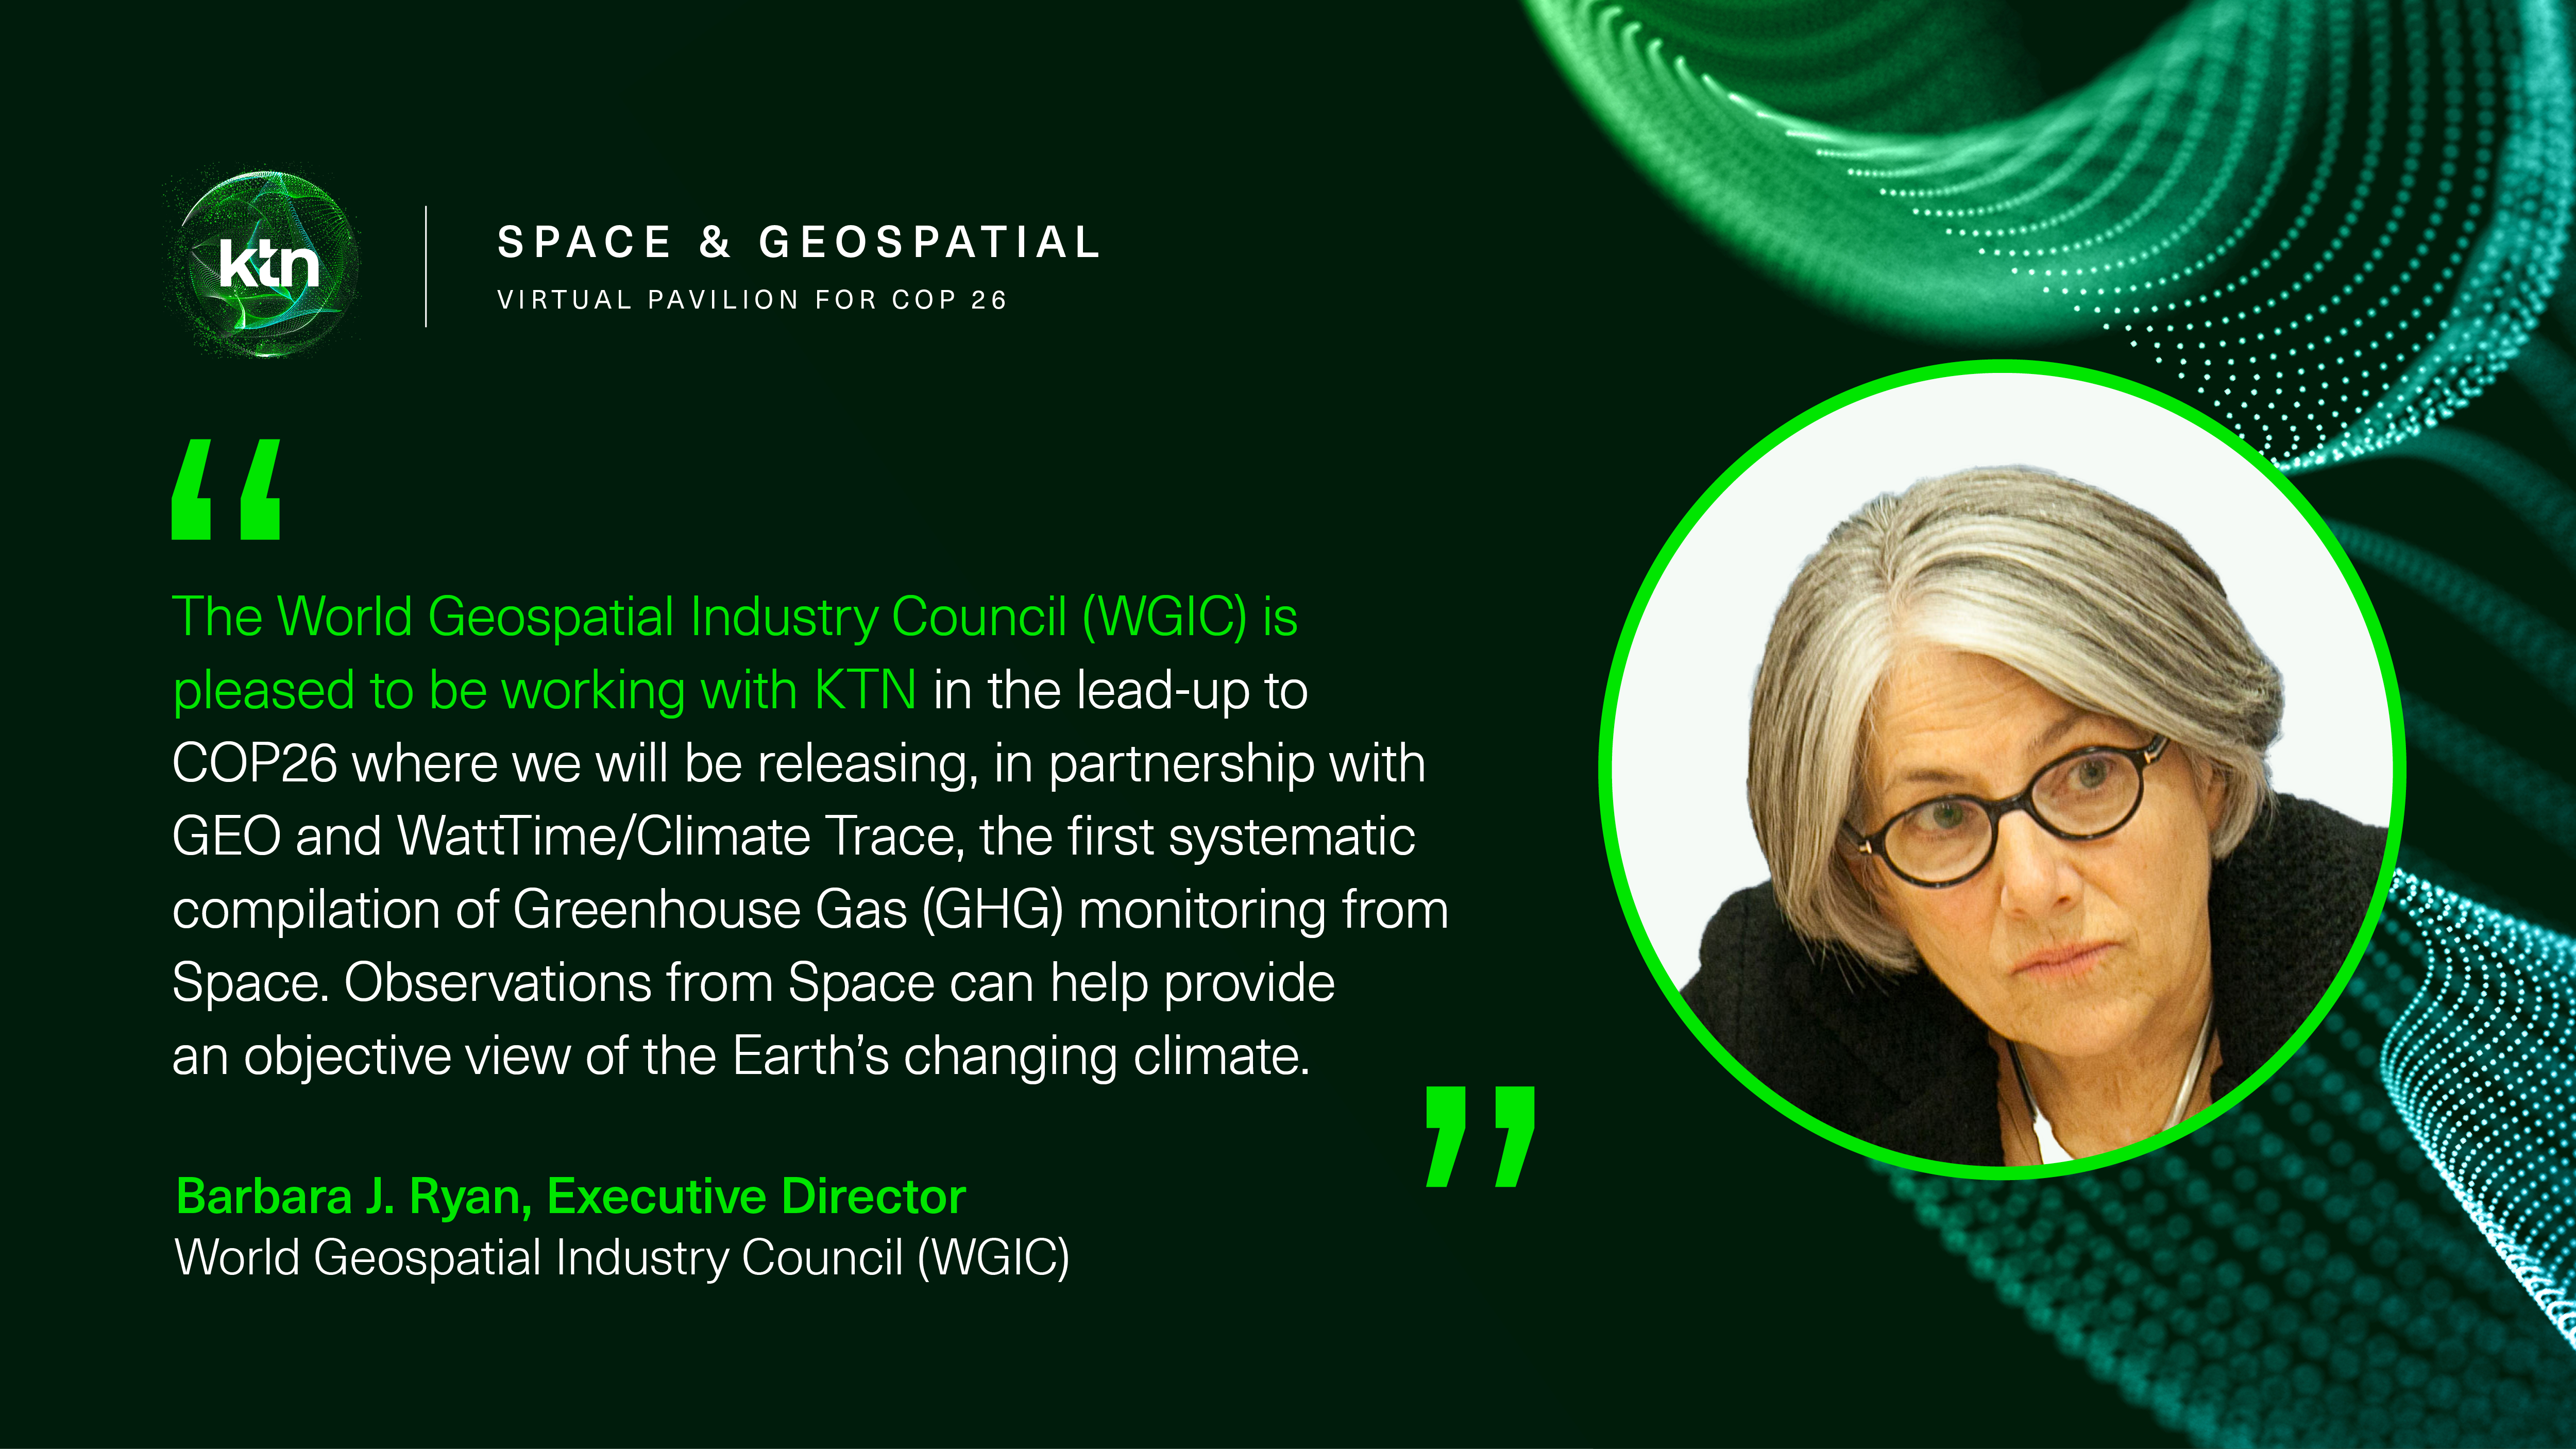 The Space & Geospatial Virtual Pavilion for COP26 - WGIC, GEO and WattTime will launch the GHG satellite report